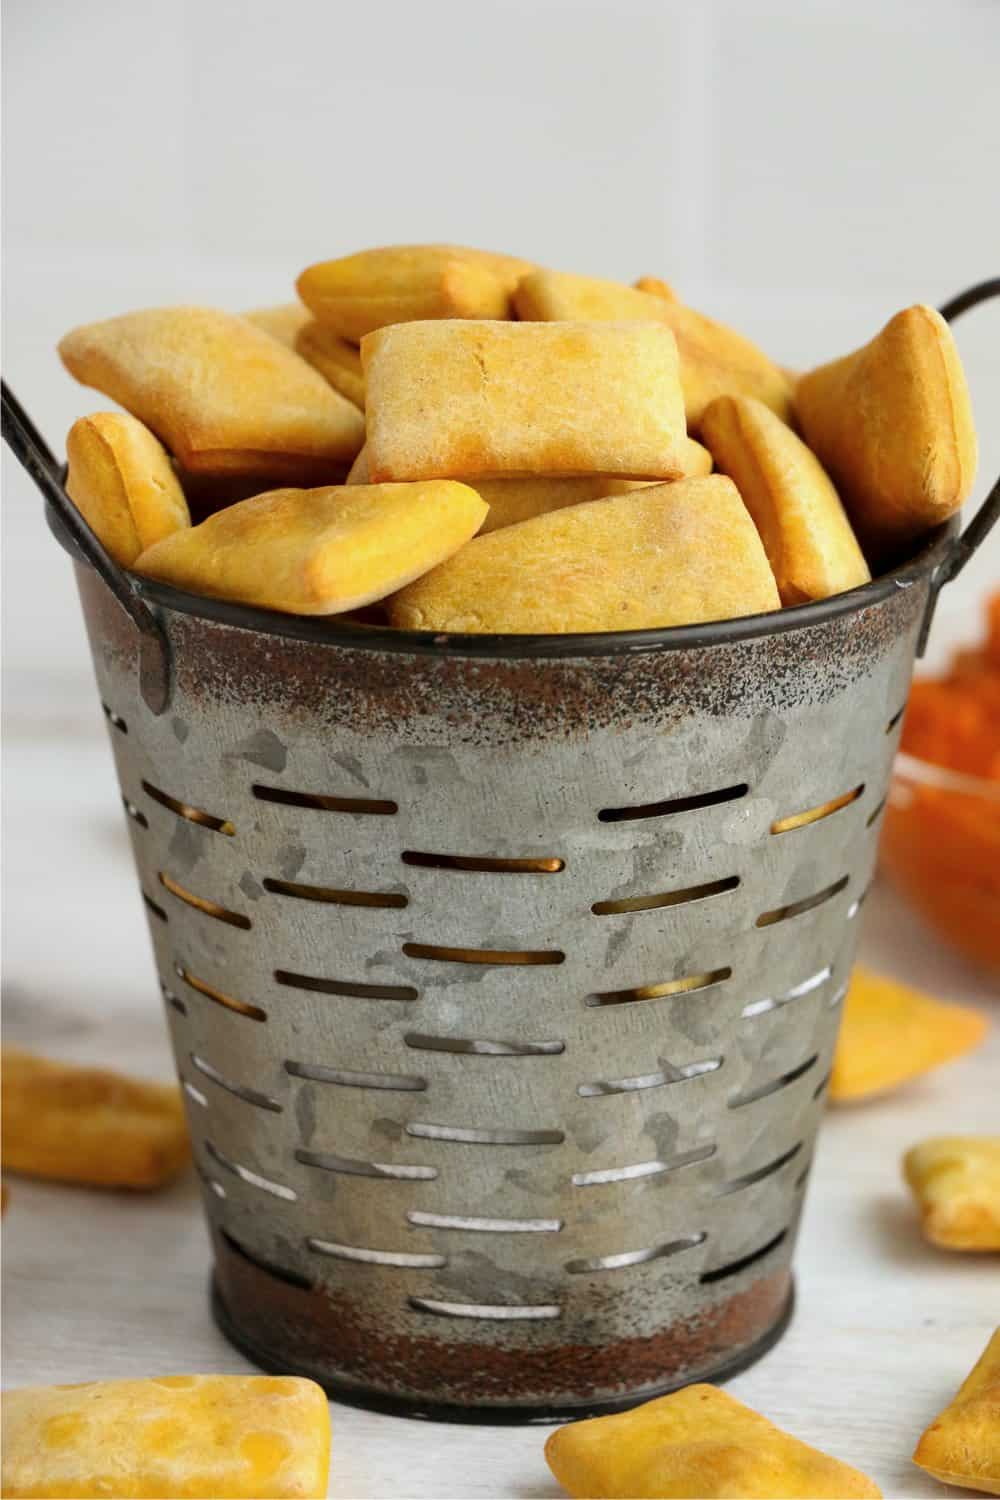 A bucket filled with air fryer dog treats